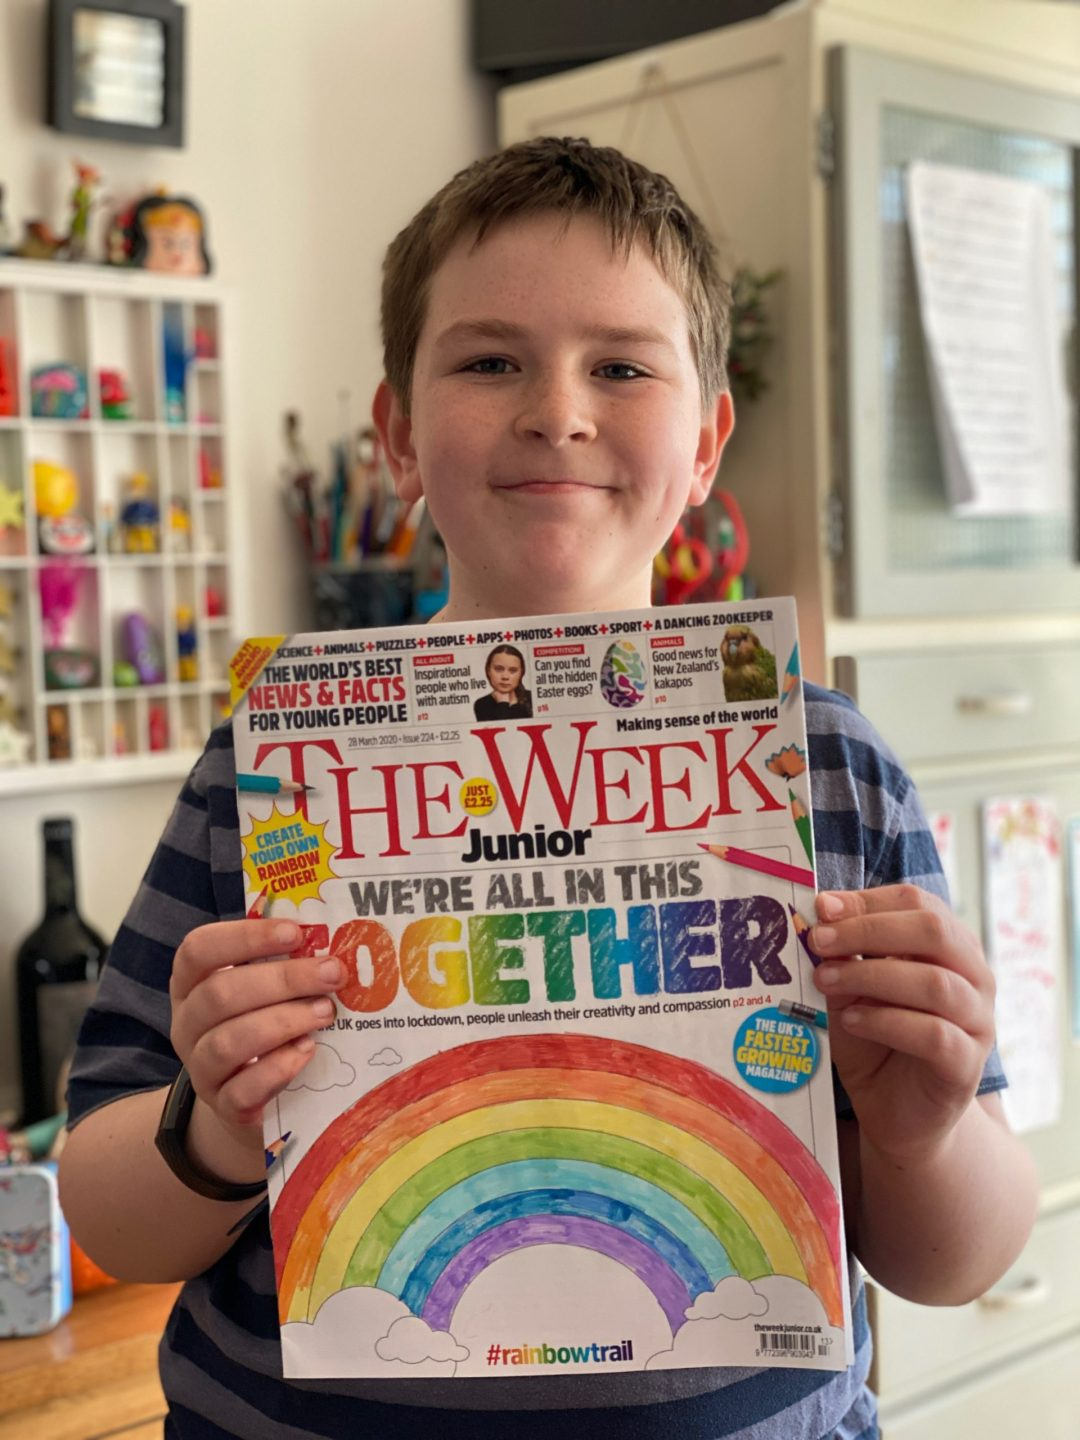 The Week Junior rainbow cover #rainbowtrail